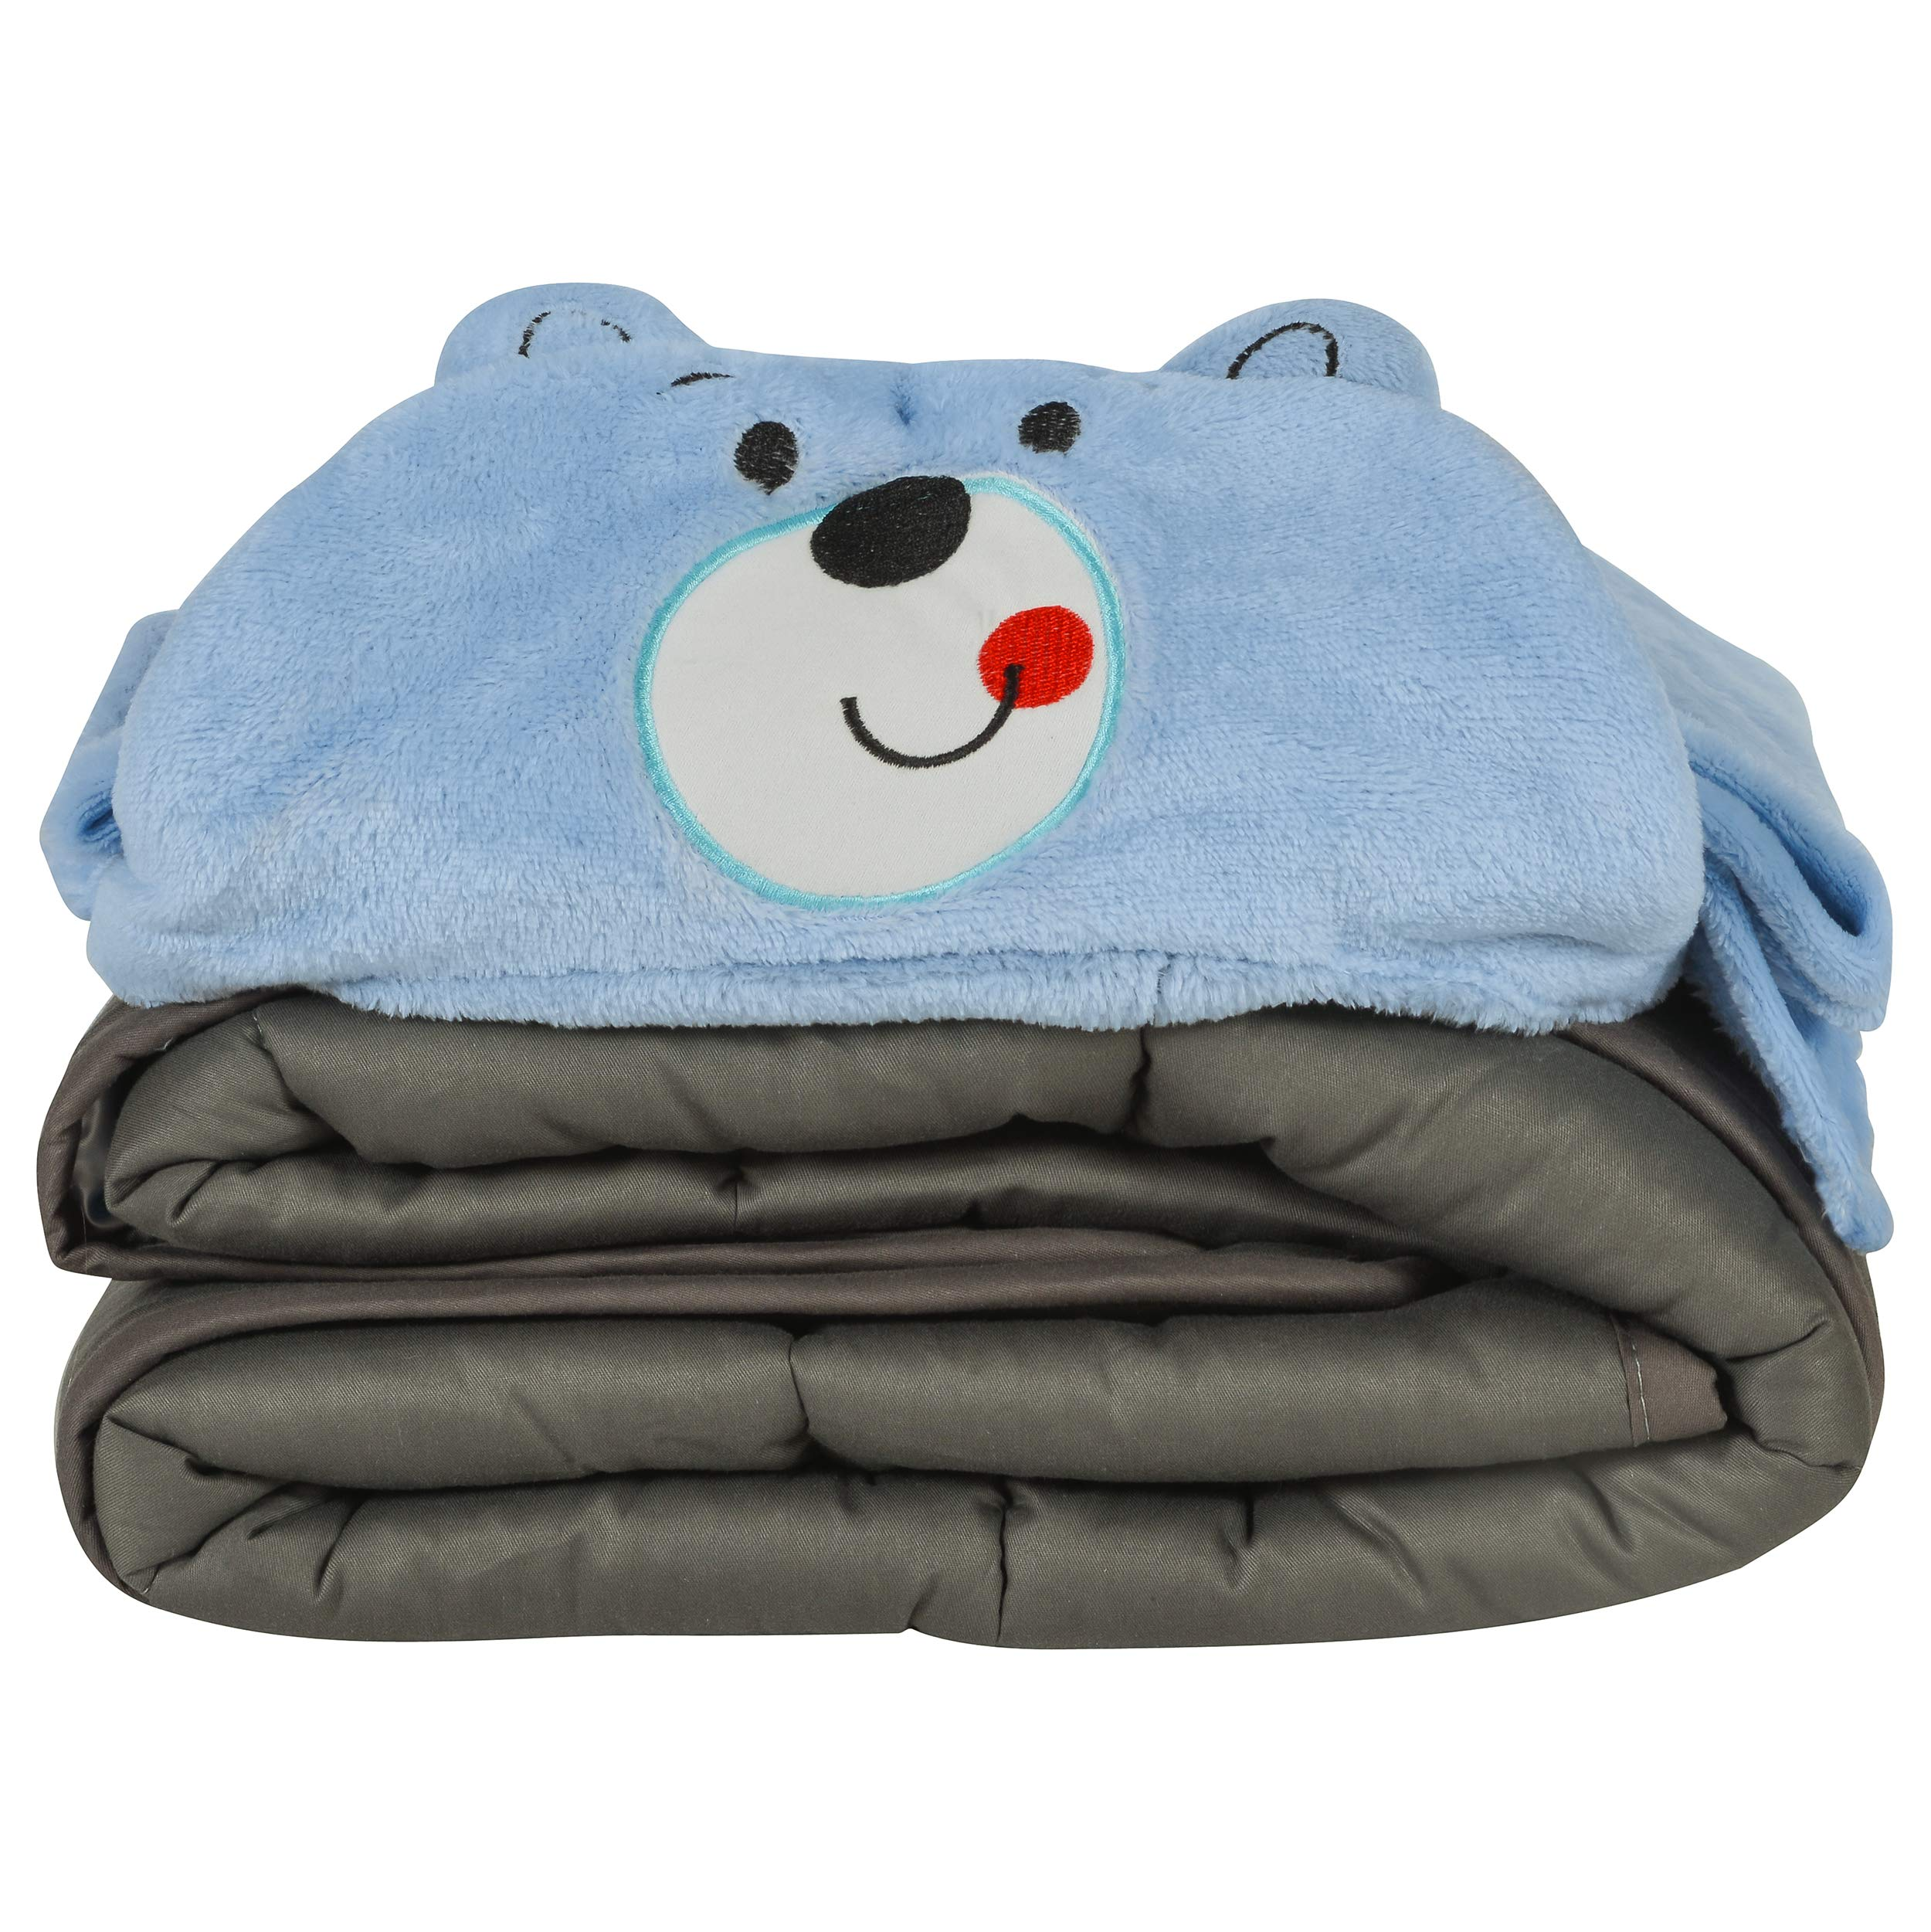 Sleepifier Weighted Blanket Comforter for Kids 100% Cotton Microfiber - Ultra Soft & Comfortable - Highly Breathable - No Heating Up - Deep Pressure Stimulation - Includes Hooded Towel